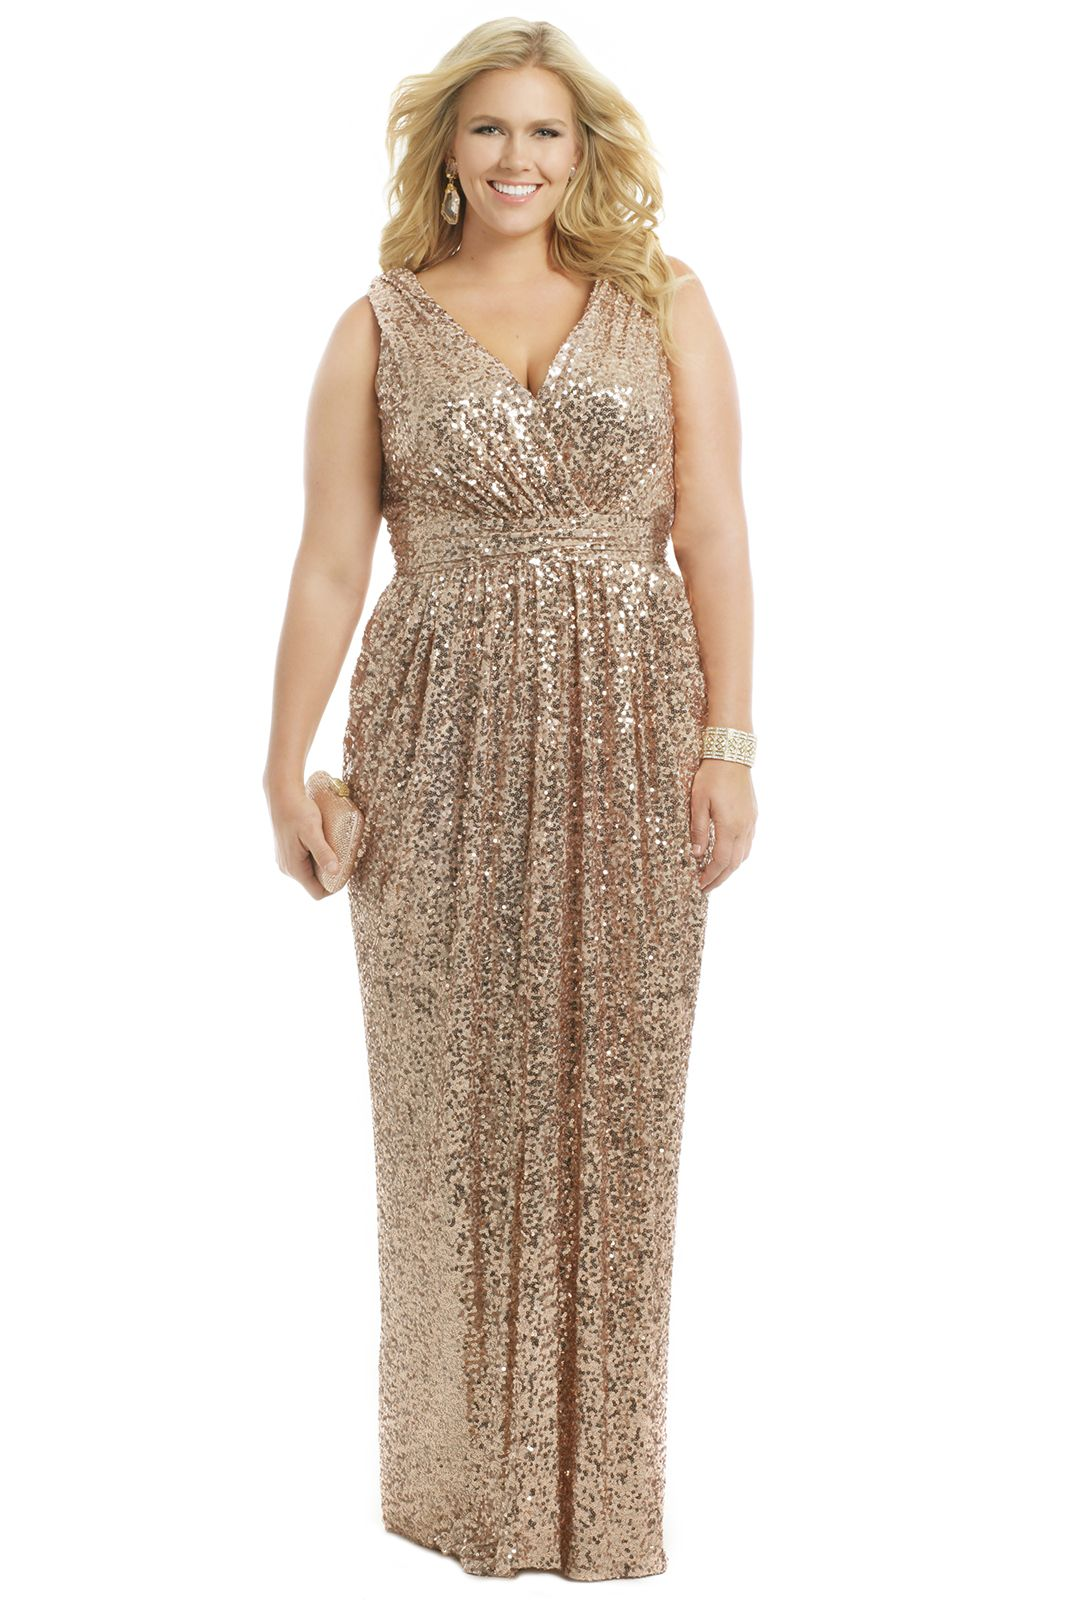 Long dresses to wear to a wedding  Rent The Runway Plus Size  Formal Wear For Curvy Women  Renting